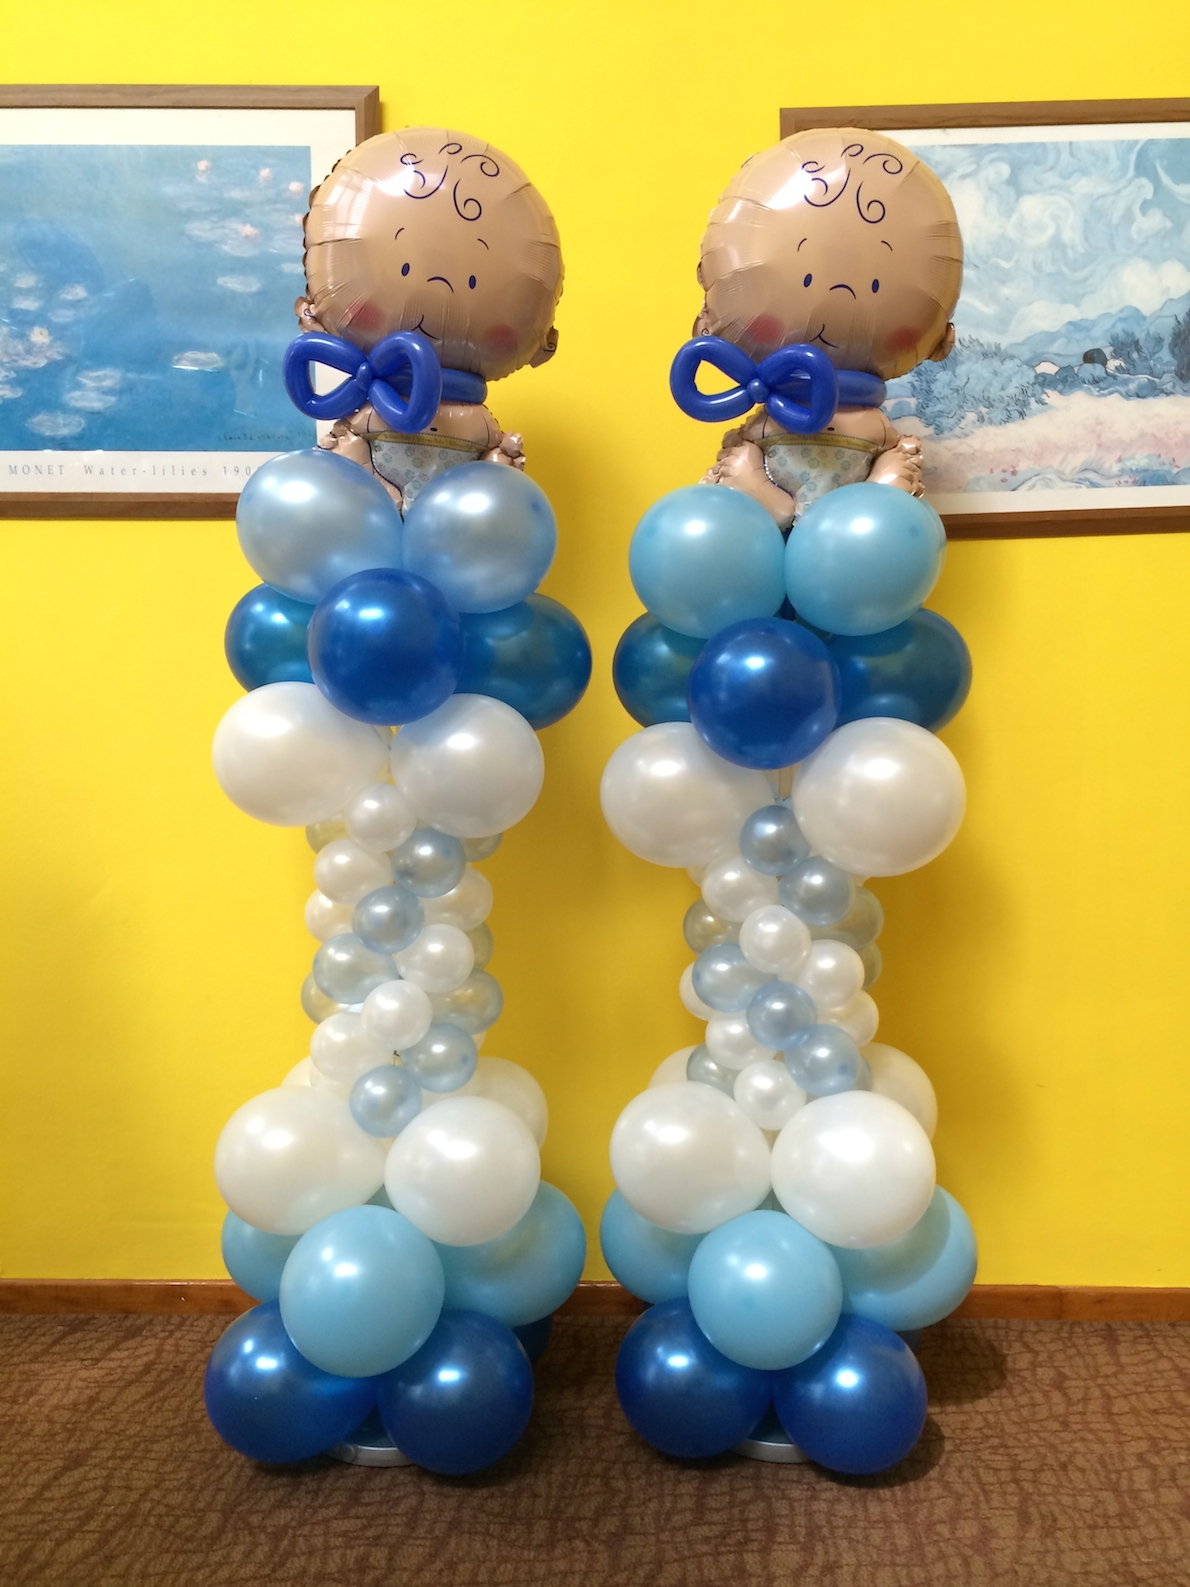 Baby birthday balloon decorations that balloons for Baby birthday decoration images